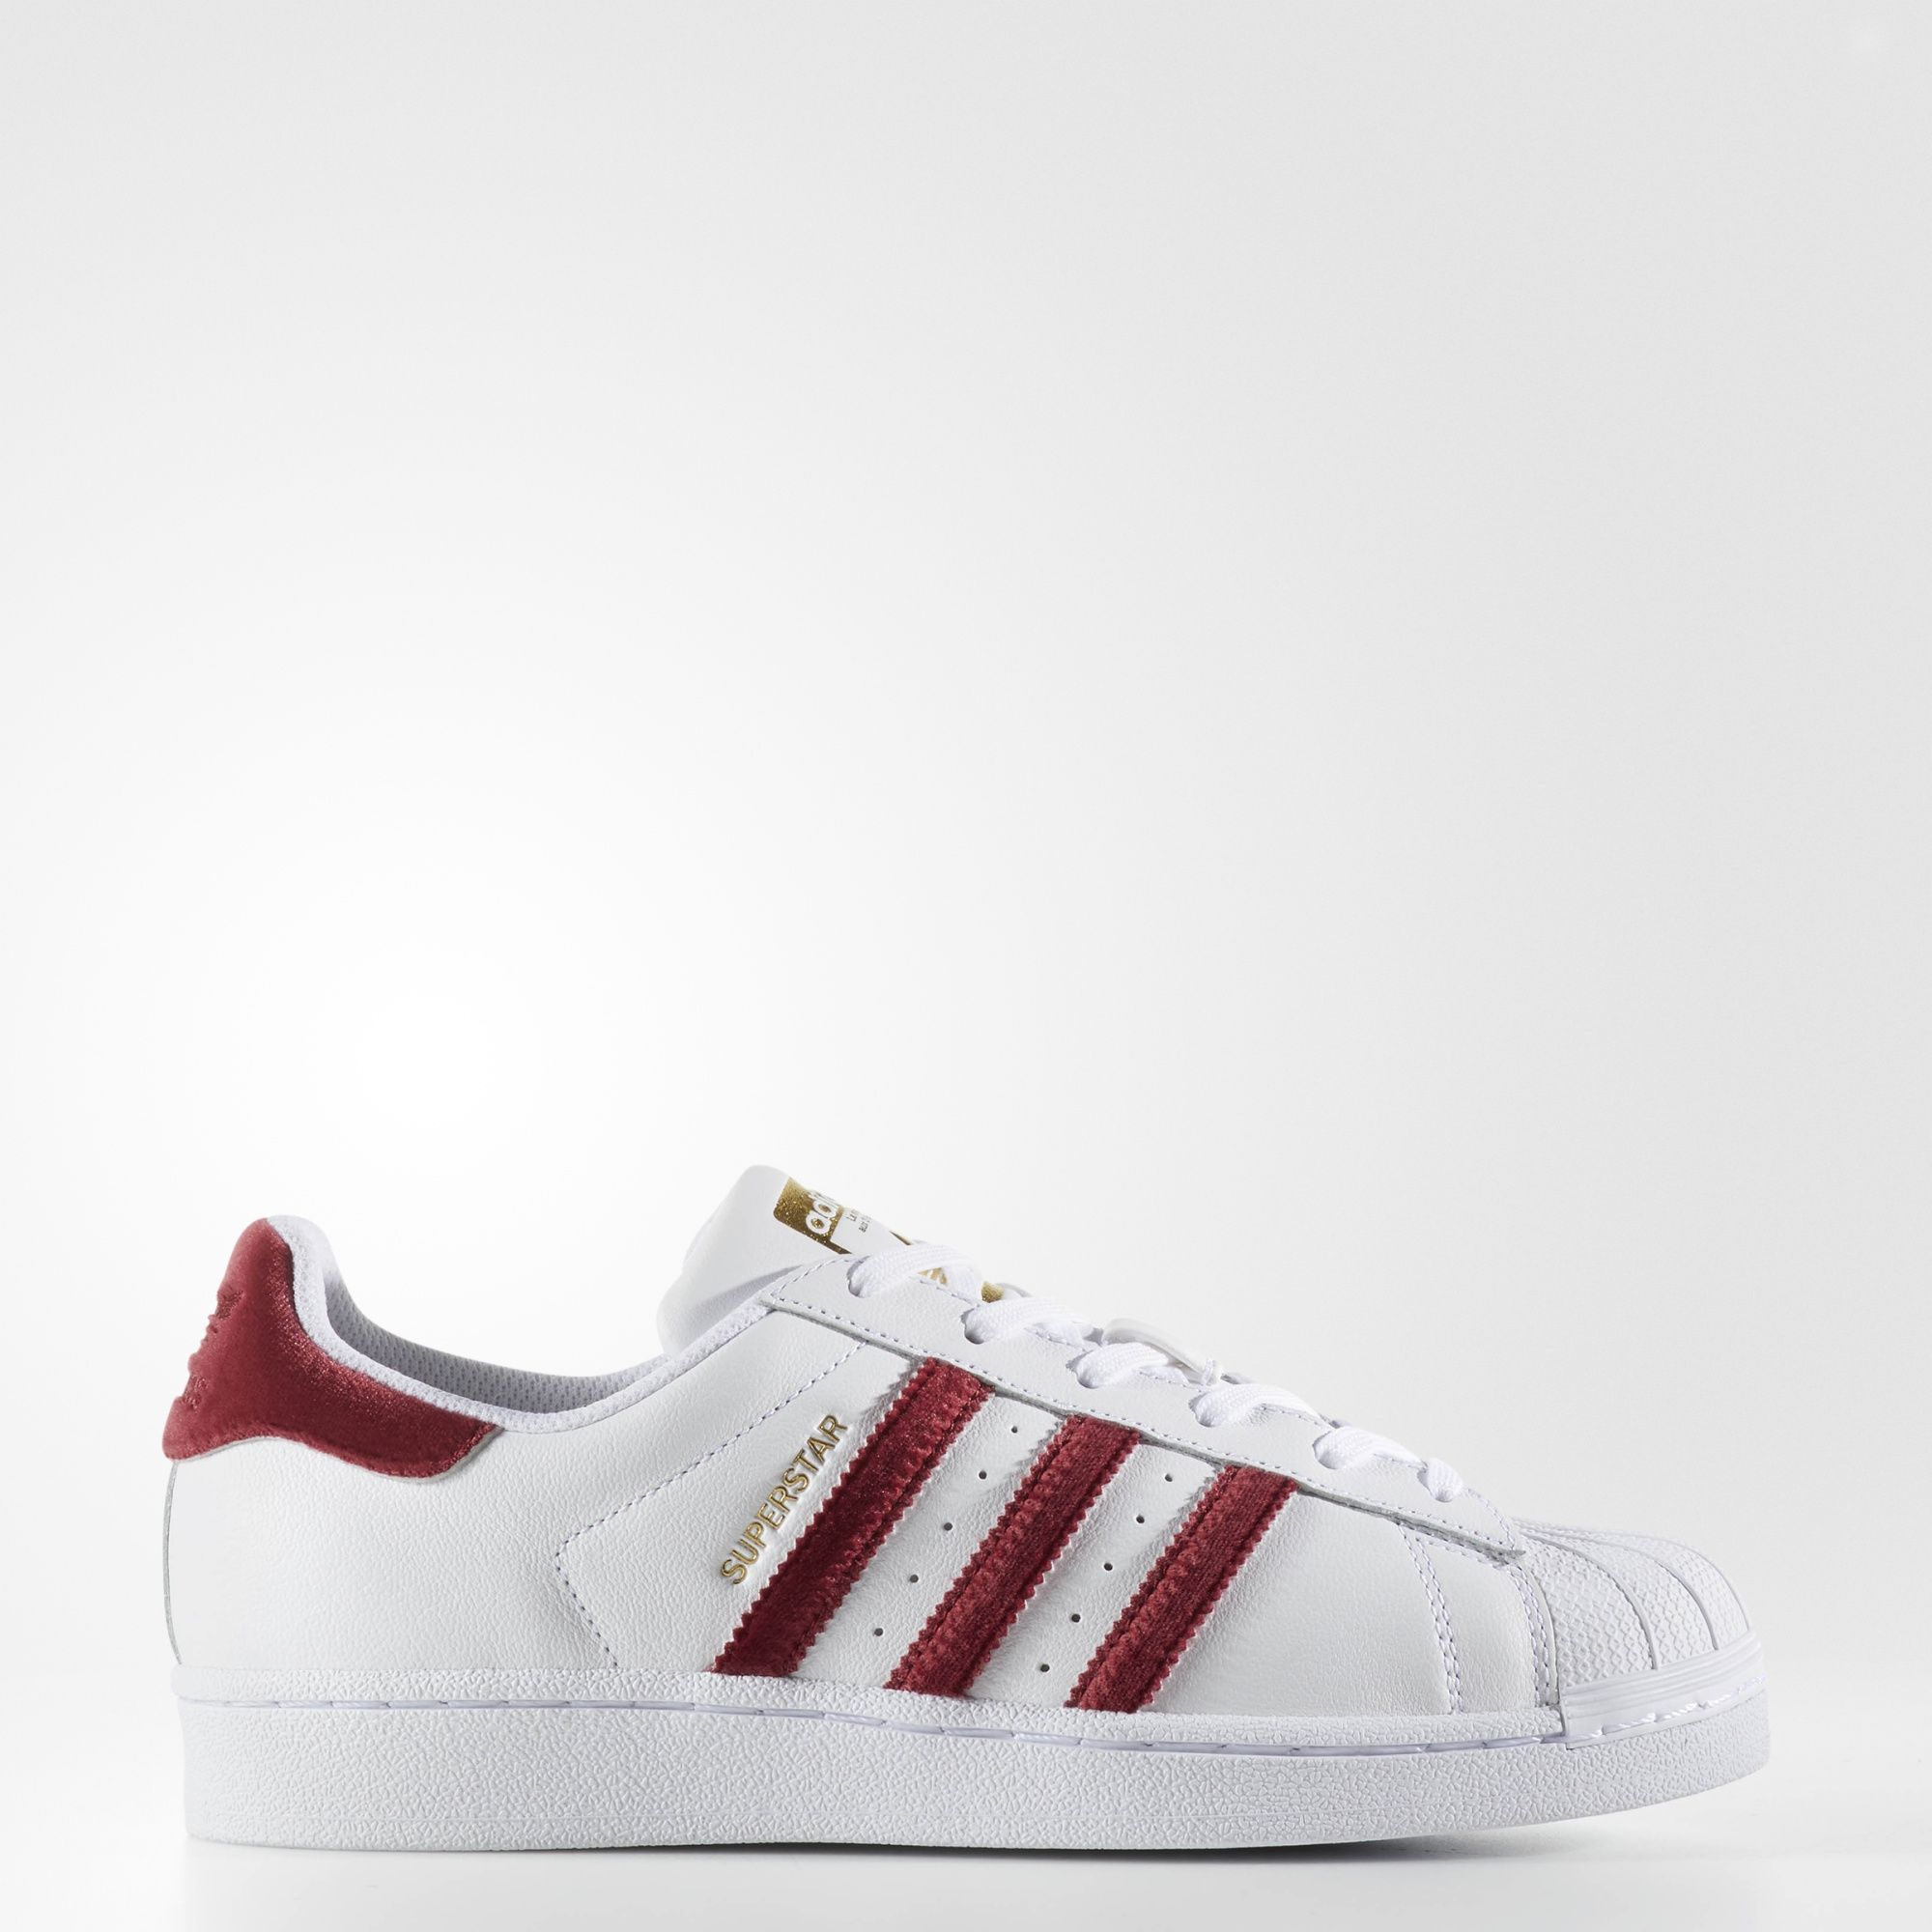 The adidas Superstar sneaker has been a streetwear legend for decades. This  women s version of the famous shell-toe design features a clean c72831e74